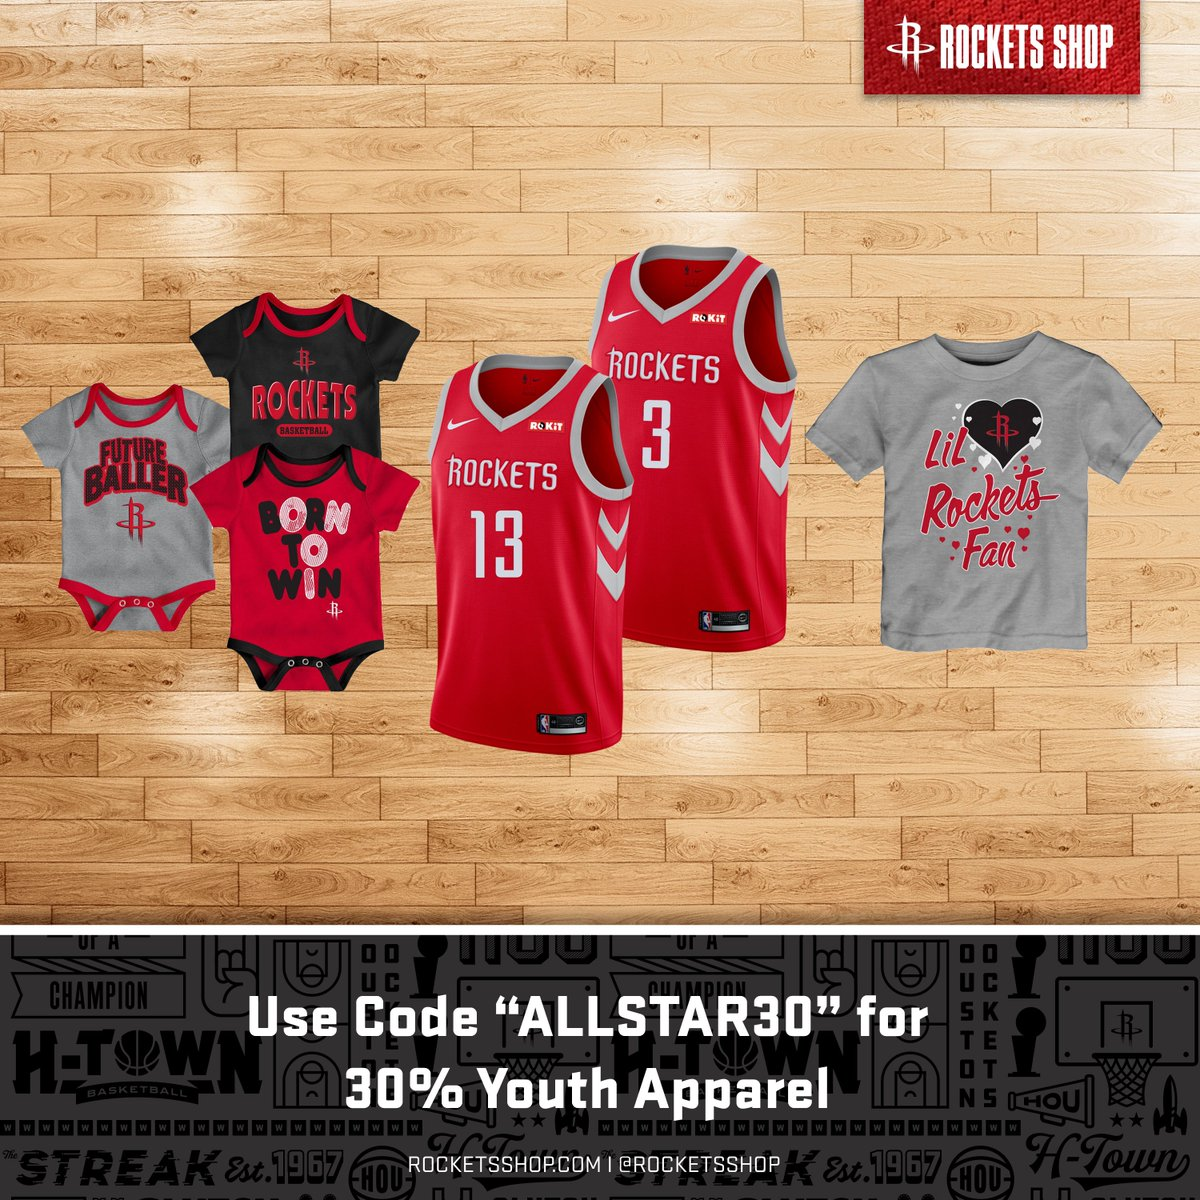 """🚨 Flash Sale 🚨  30% OFF Youth Apparel Items Including Jerseys   Use Code """"ALLSTAR30"""" (Valid until 2/17   Shop Now » http://bit.ly/2I9sQNW"""